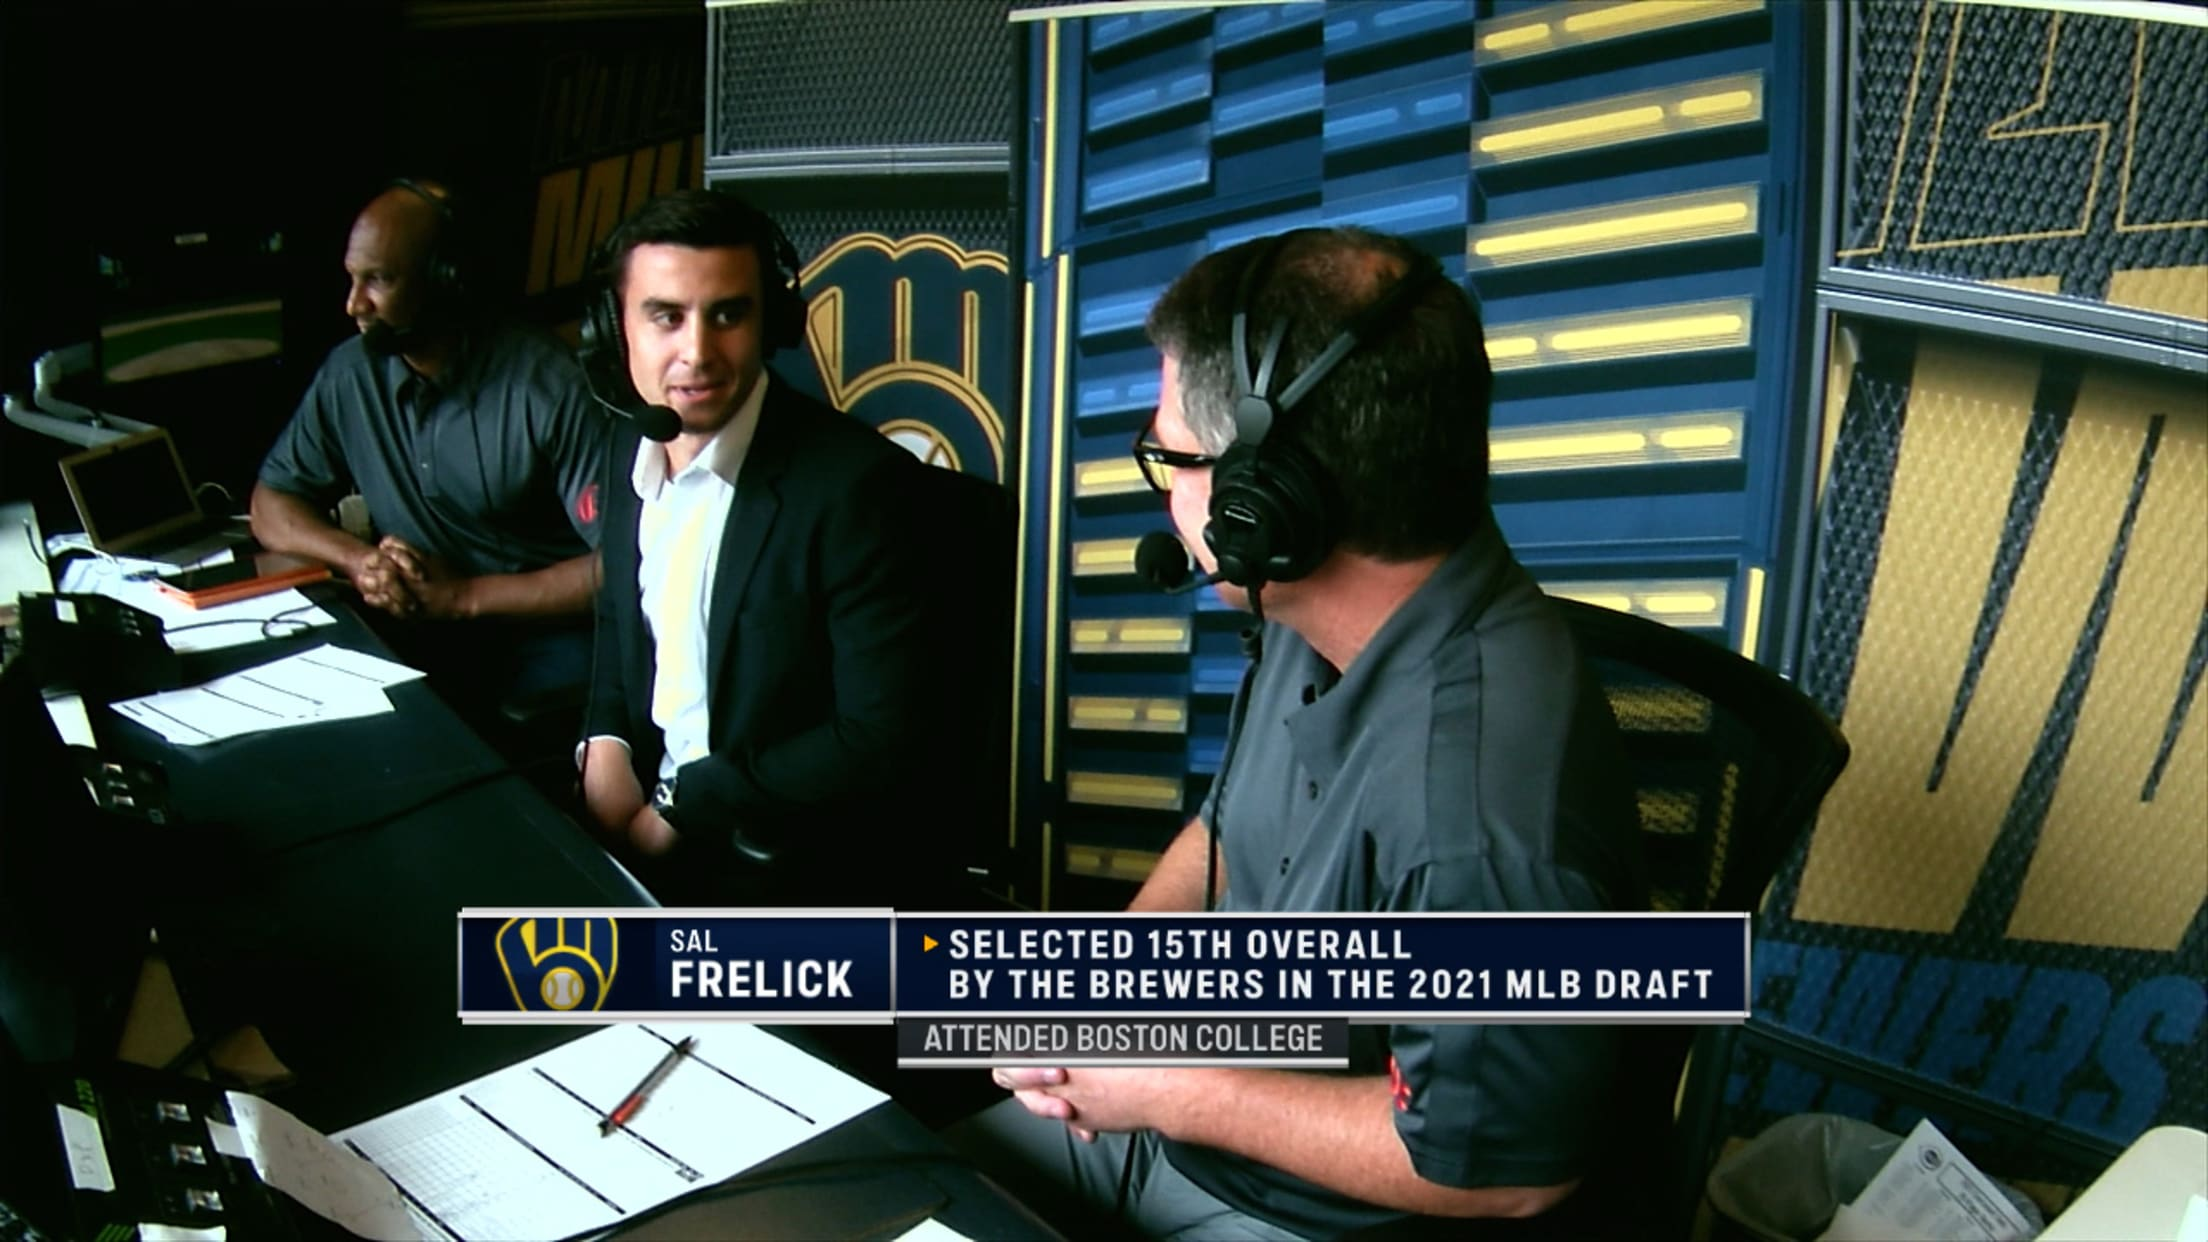 Sal Frelick joins the booth